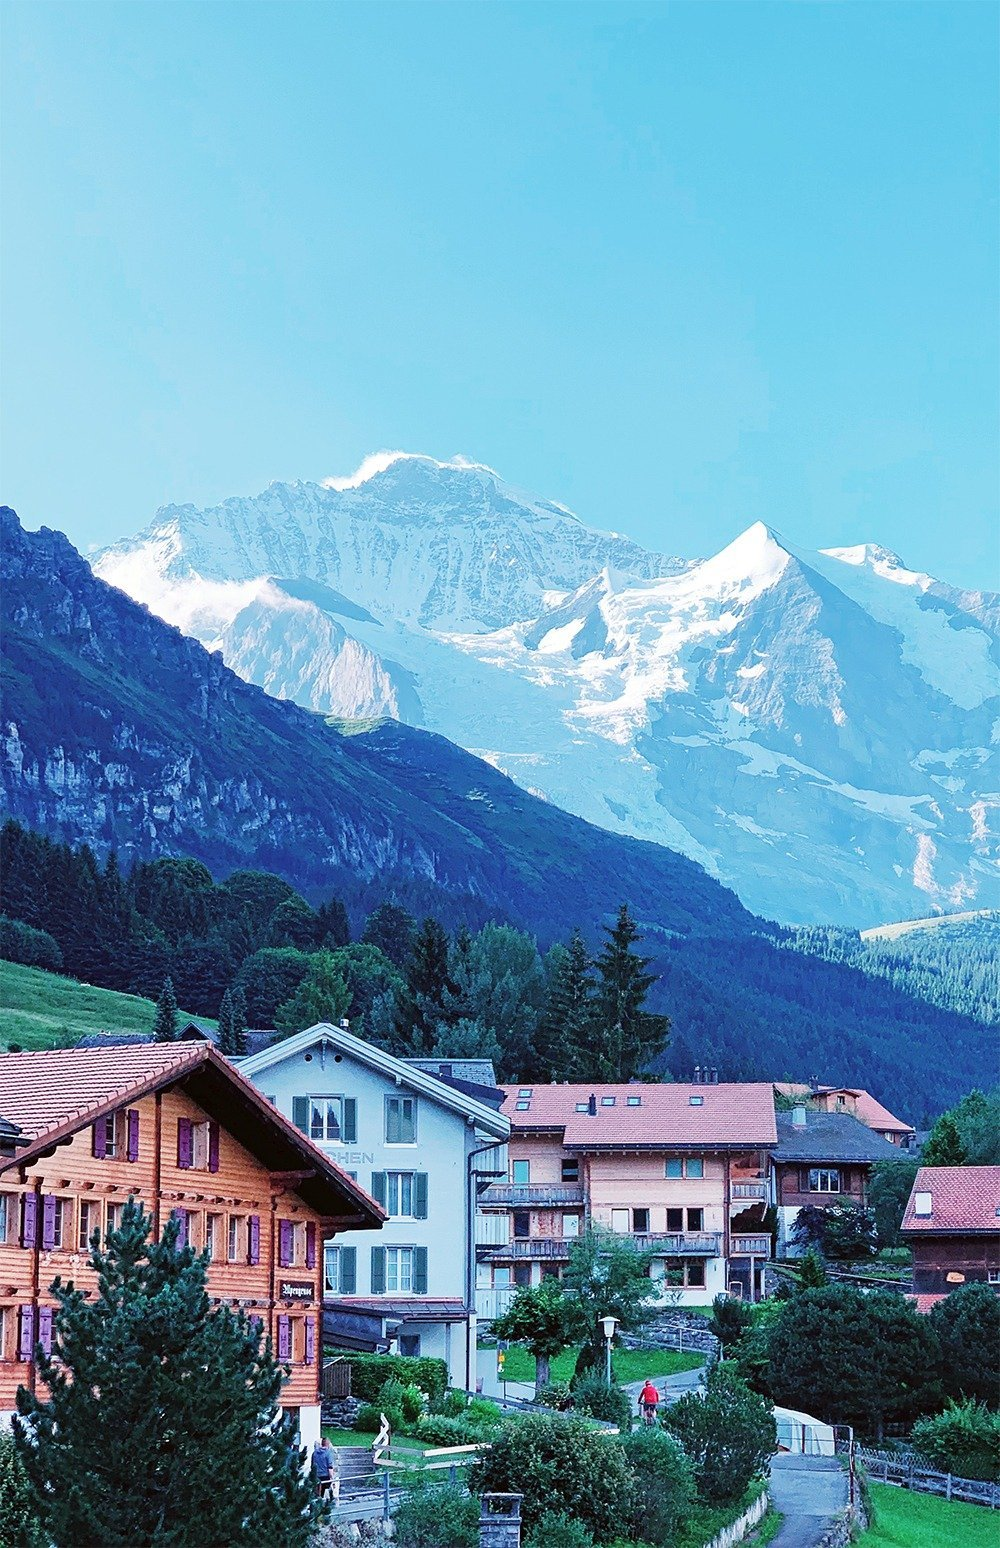 Majestic views, the crisp mountain air, and charming villages like Wengen and Mürren are what a trip to Switzerland's Jungfrau region is all about! Retreat to this peaceful Swiss mountaintop village and enjoy miles of panoramic hiking trails and stunning scenery. Here's where to stay in Jungfrau.